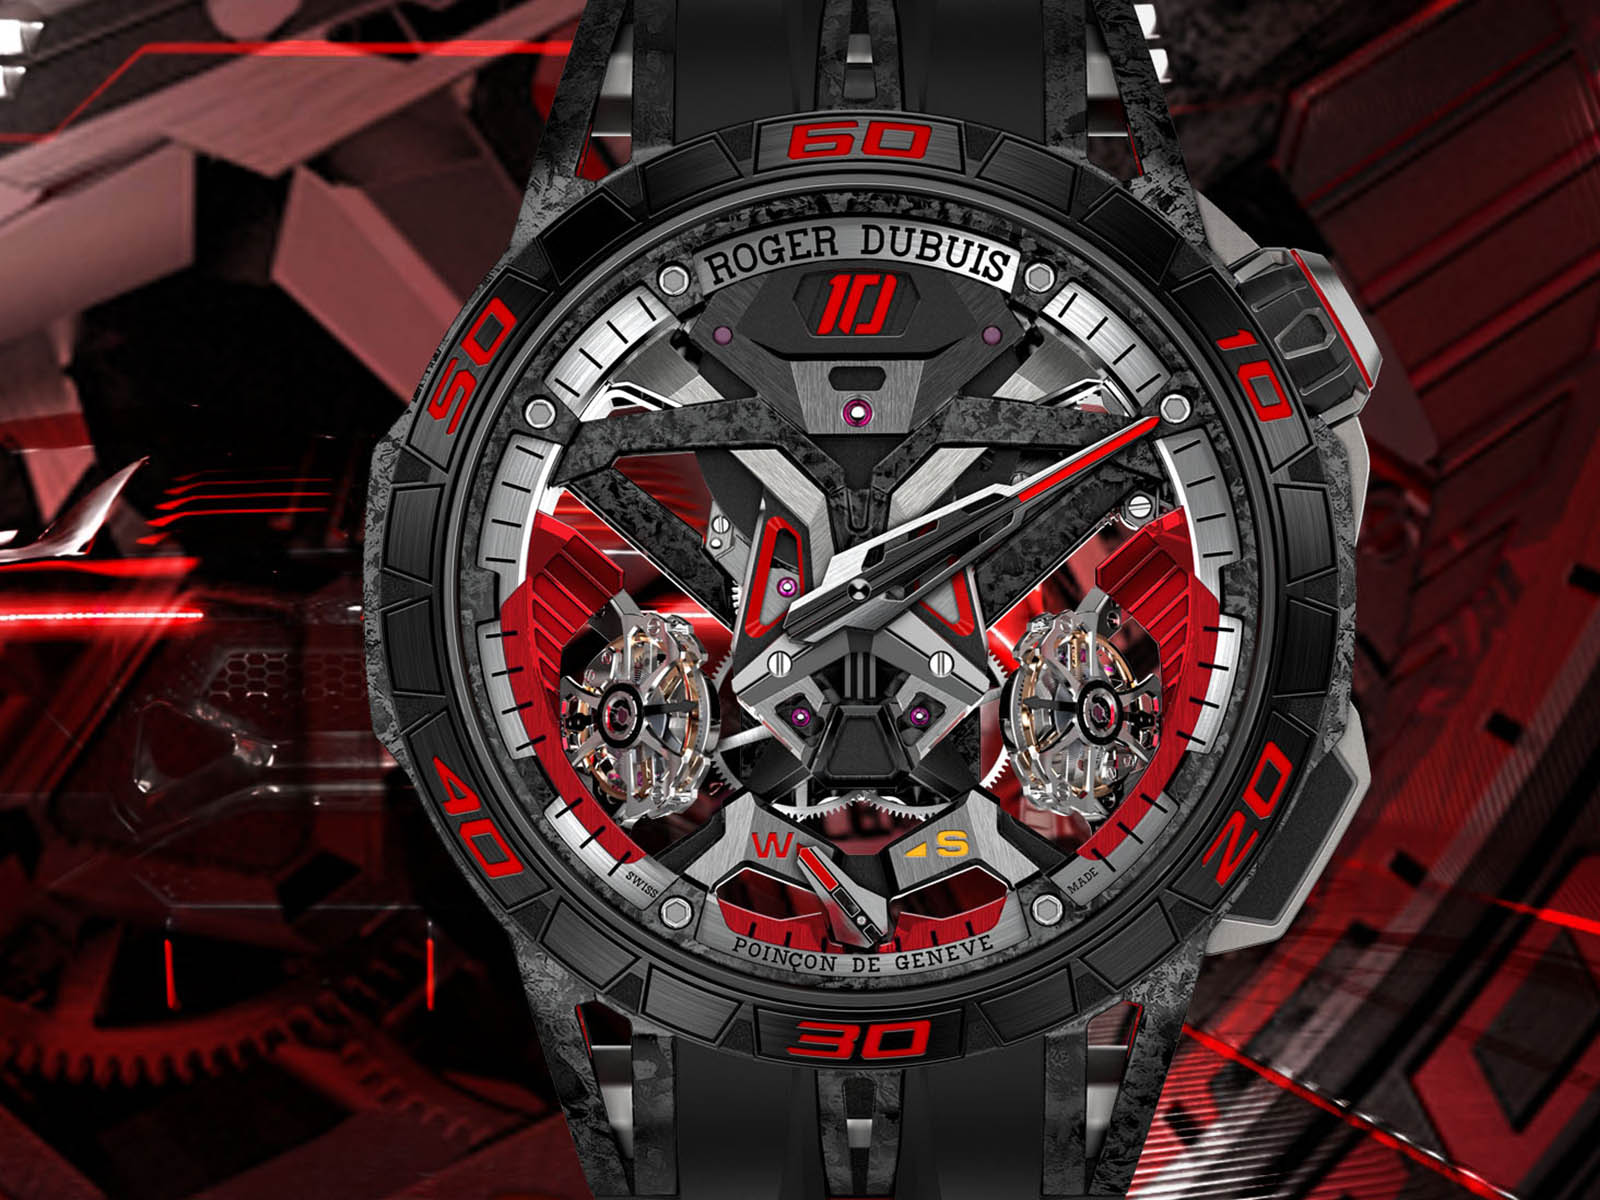 rddbex0765-roger-dubuis-excalibur-one-off-3.jpg